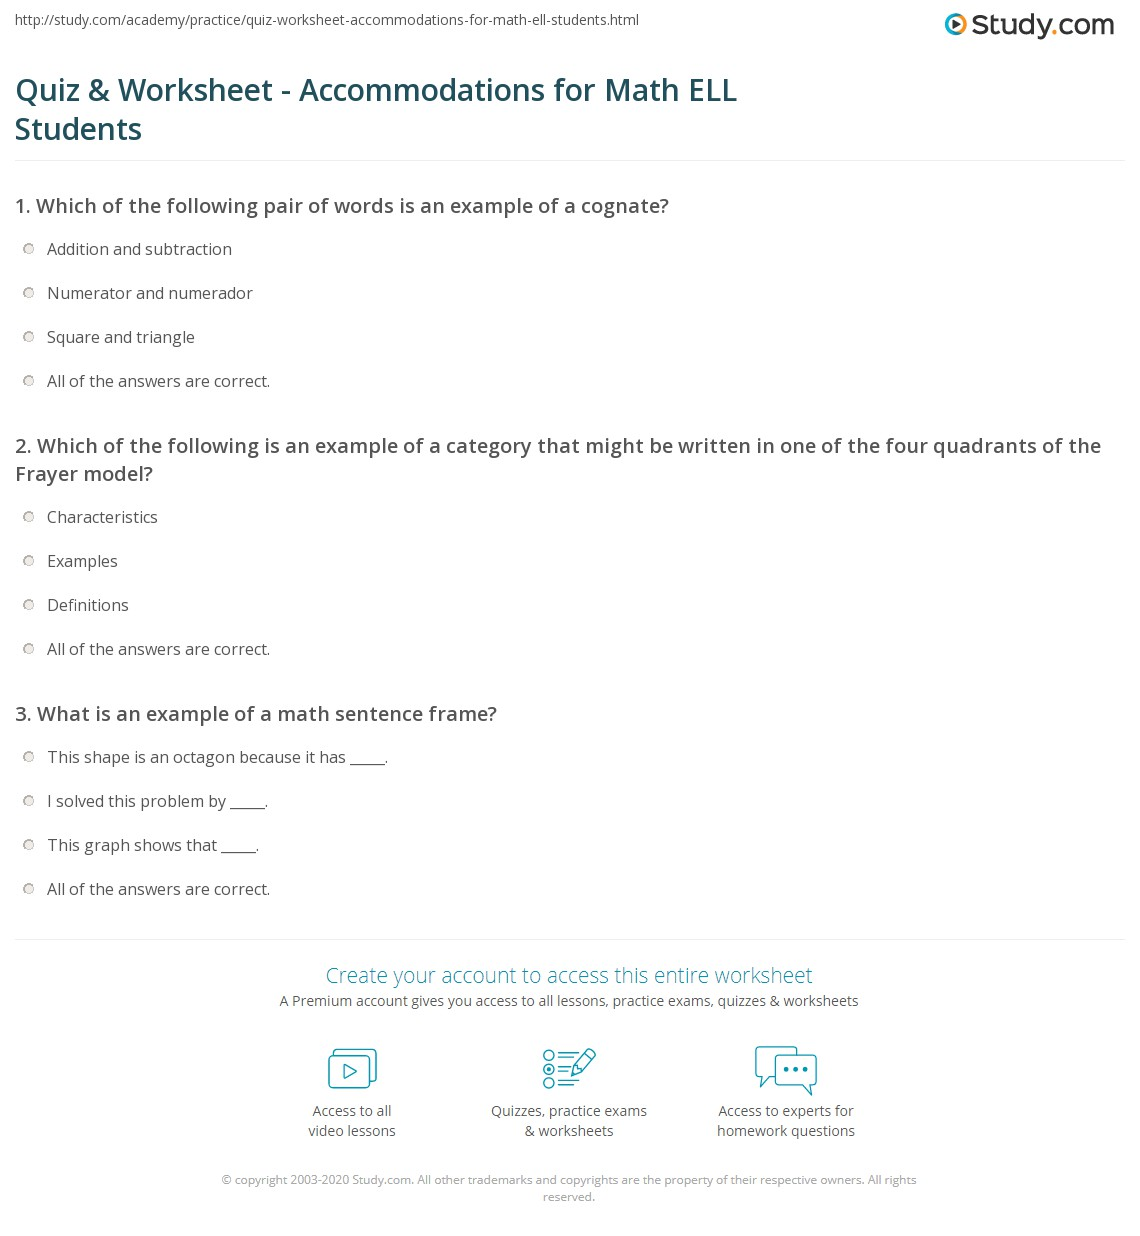 Worksheet Ell Math quiz worksheet accommodations for math ell students study com print adaptations modifications in worksheet